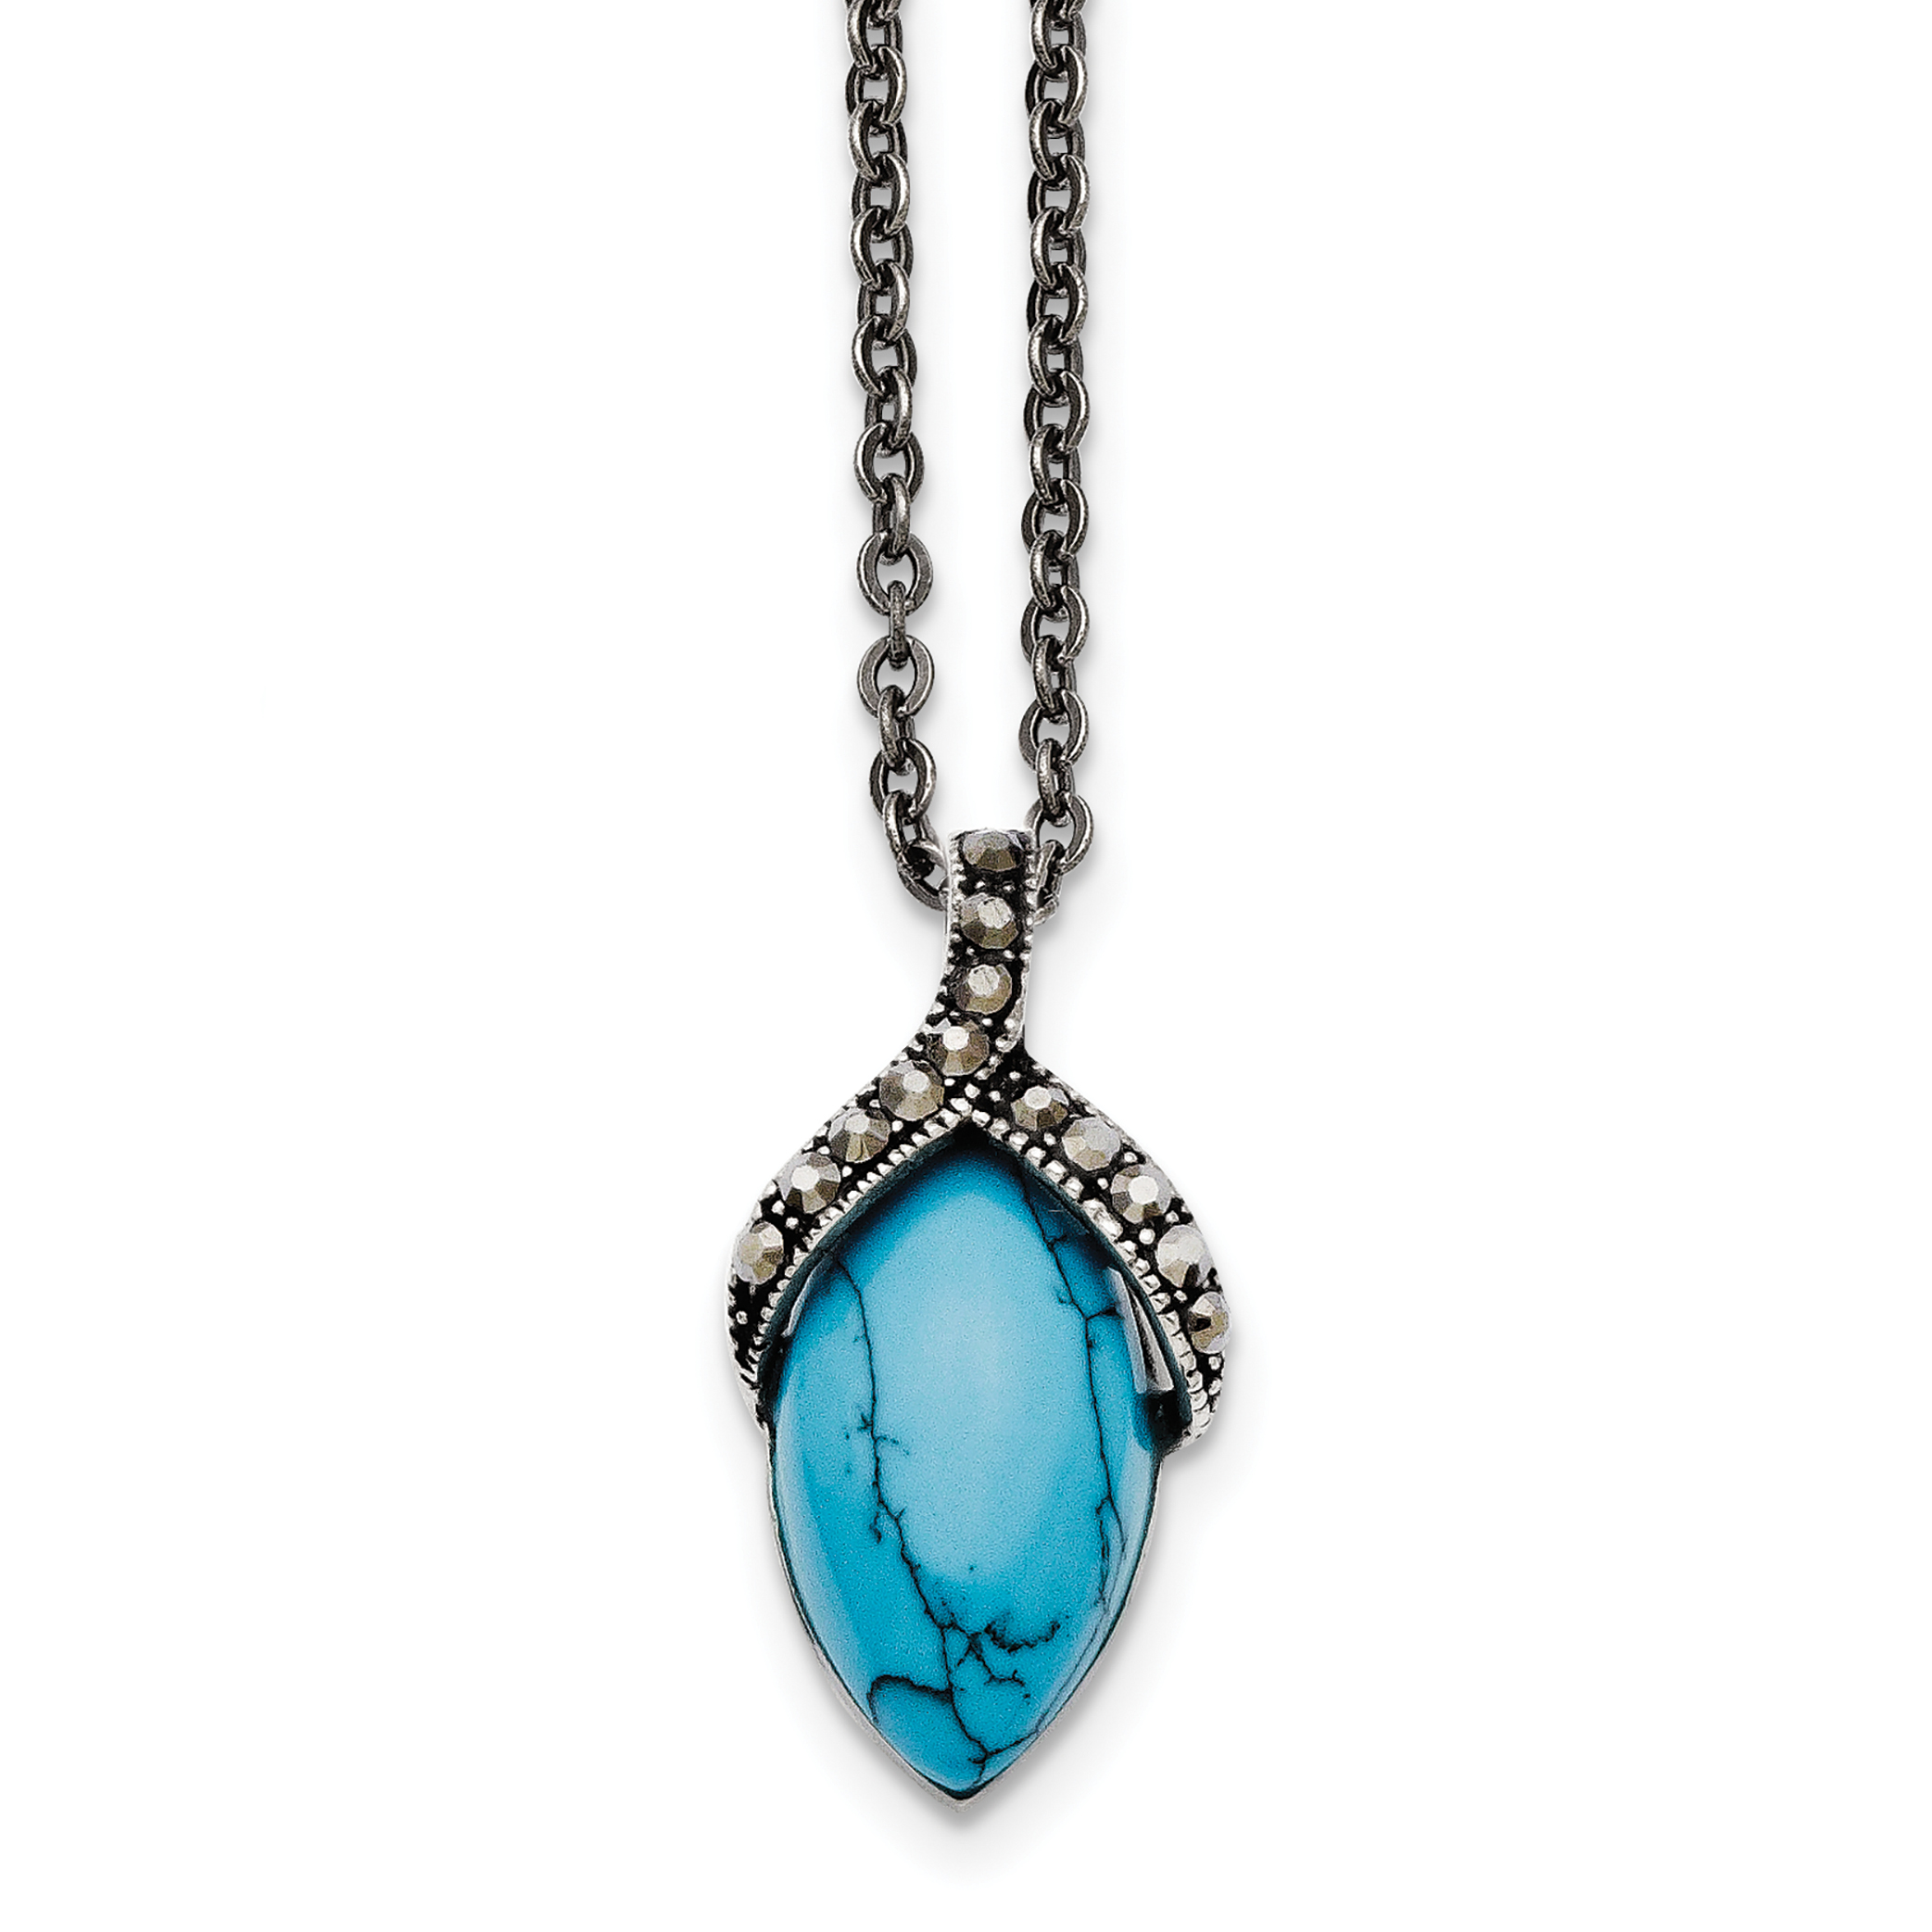 Stainless Steel Simulated Turquoise Marcasite Antiqued Necklace SRN1370 by Chisel